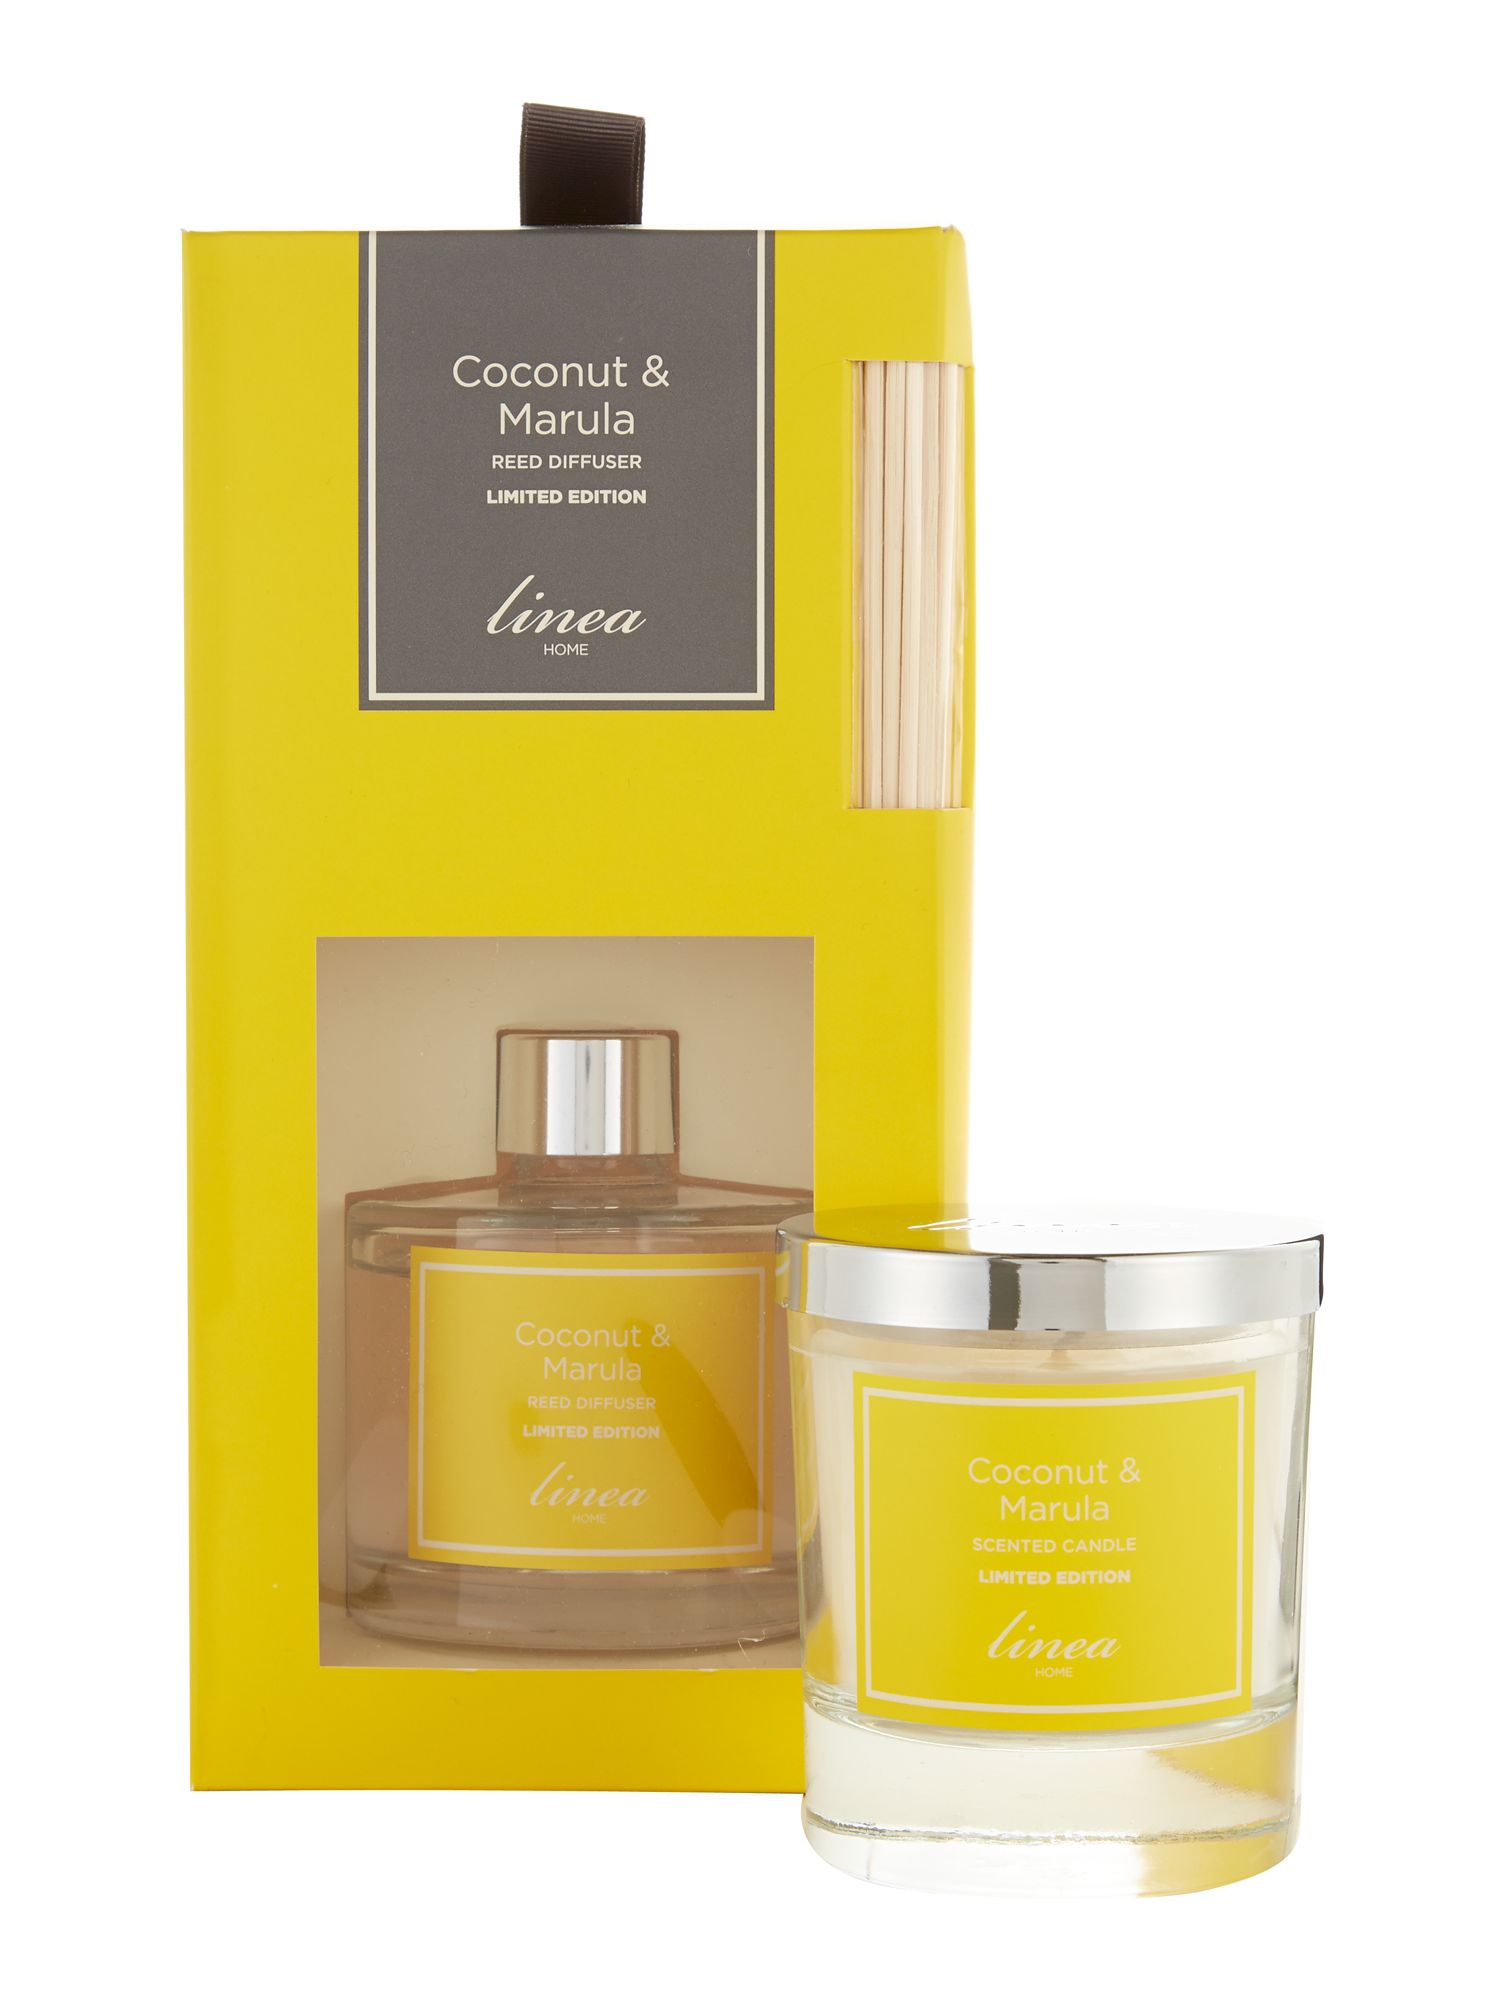 Coconut and Marula Fragrance